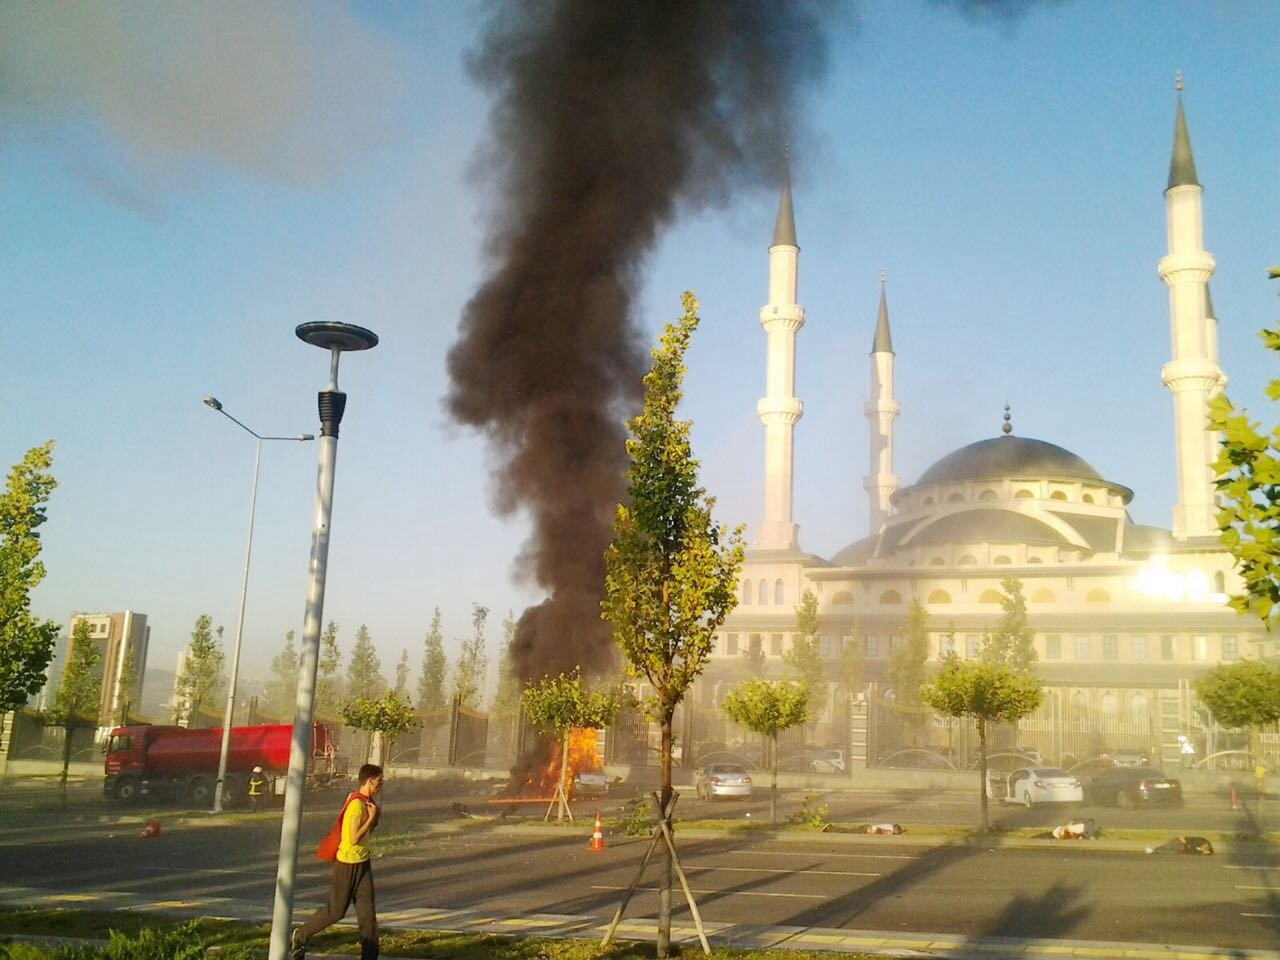 Bombs fell on one of the cars parked in front of Millet Mosque and the bombs killed five civilians.